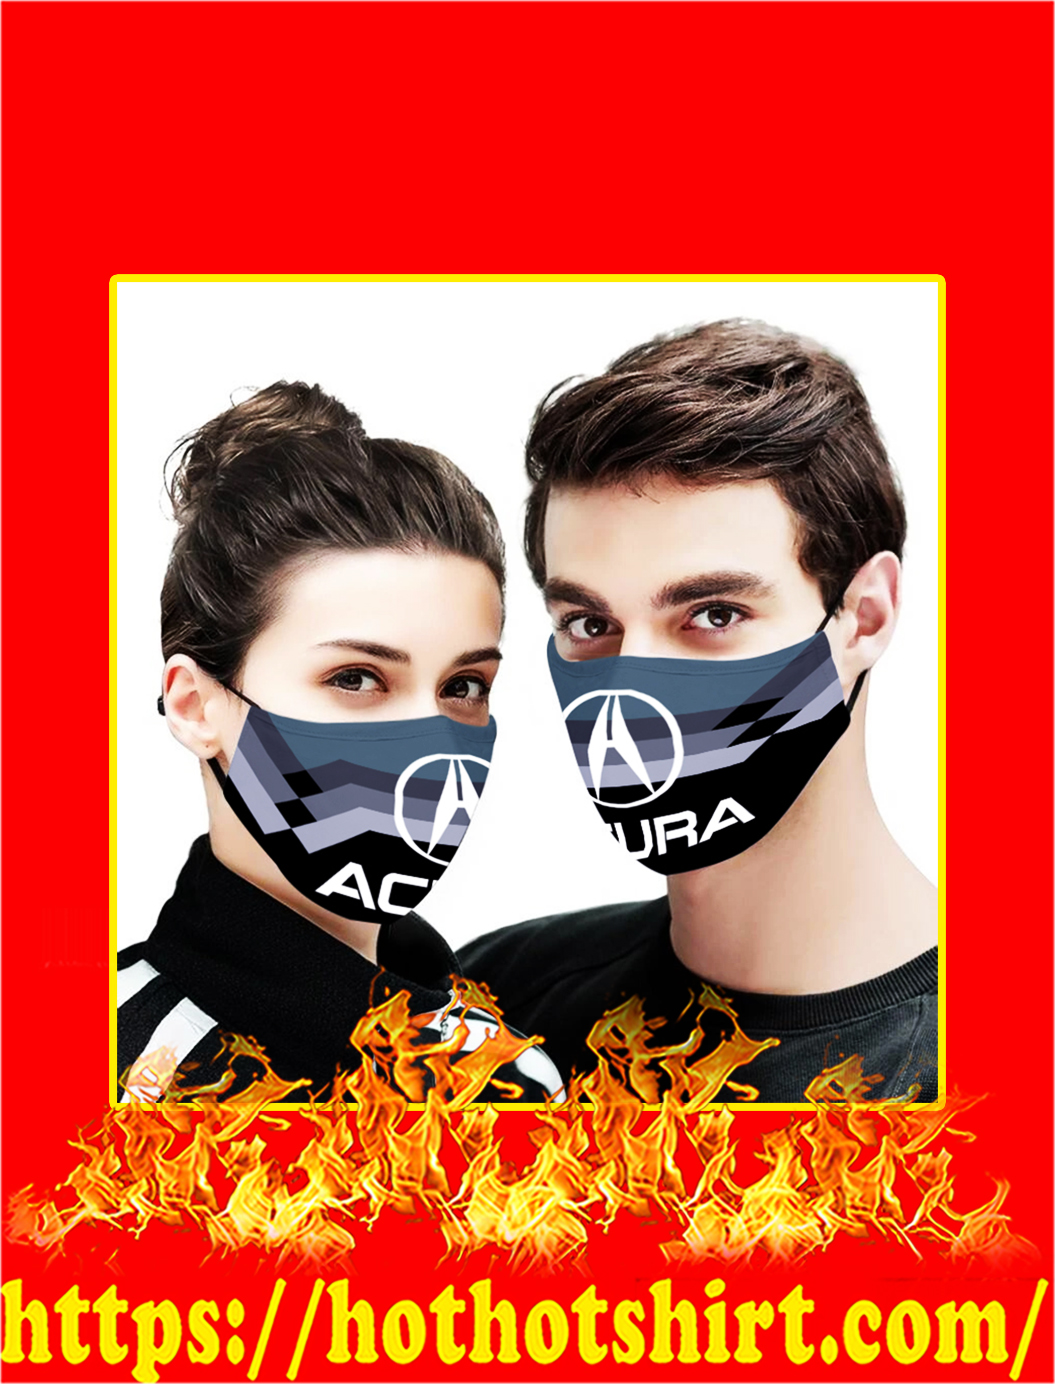 Acura face mask- pic 1